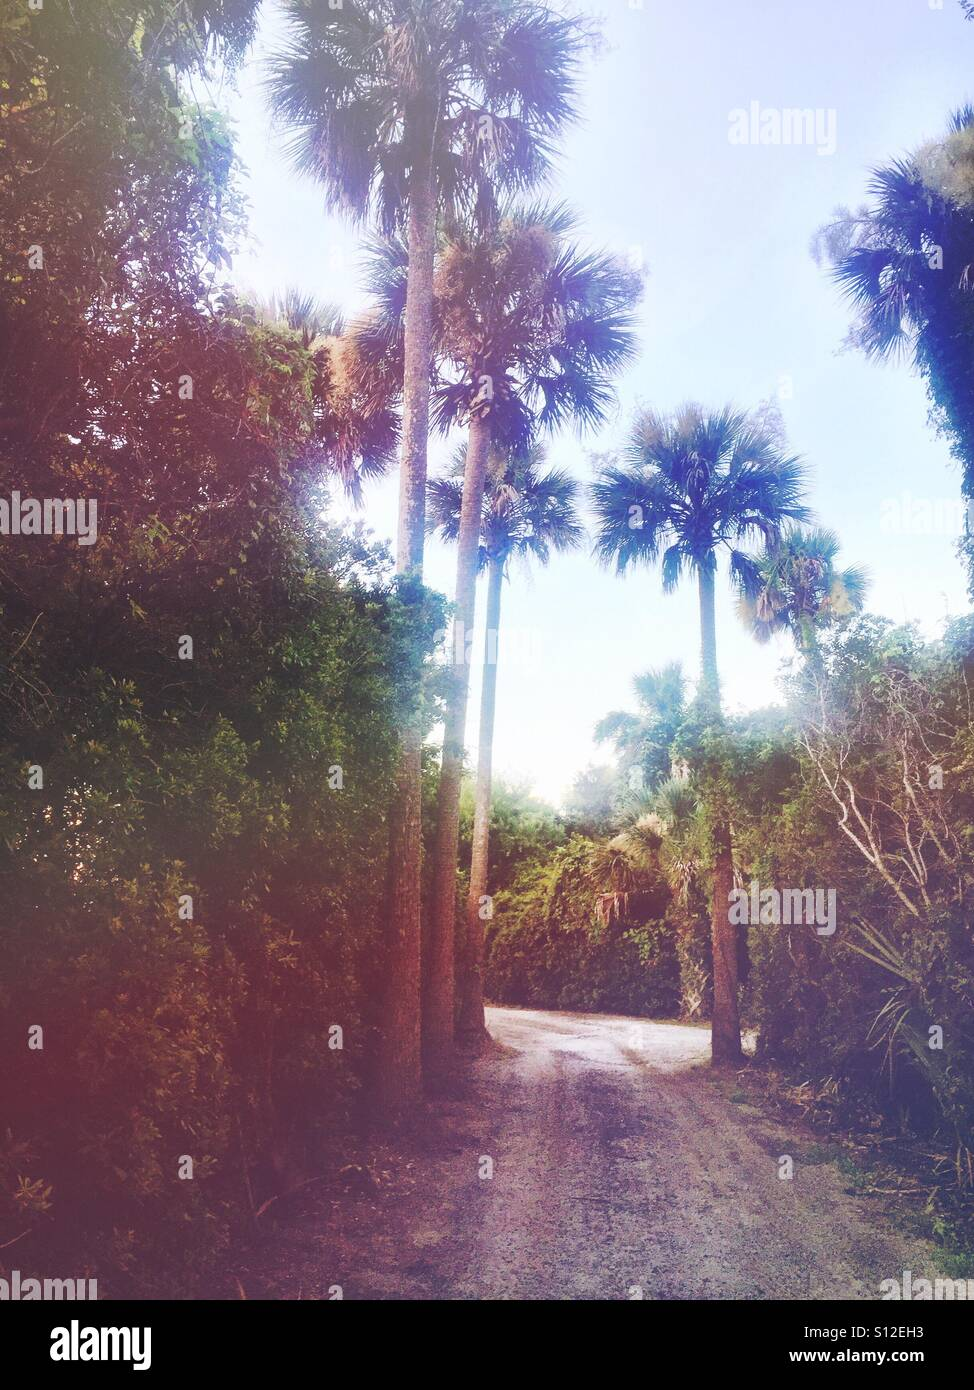 A path through some palmetto trees in the Lowcountry of South Carolina. - Stock Image